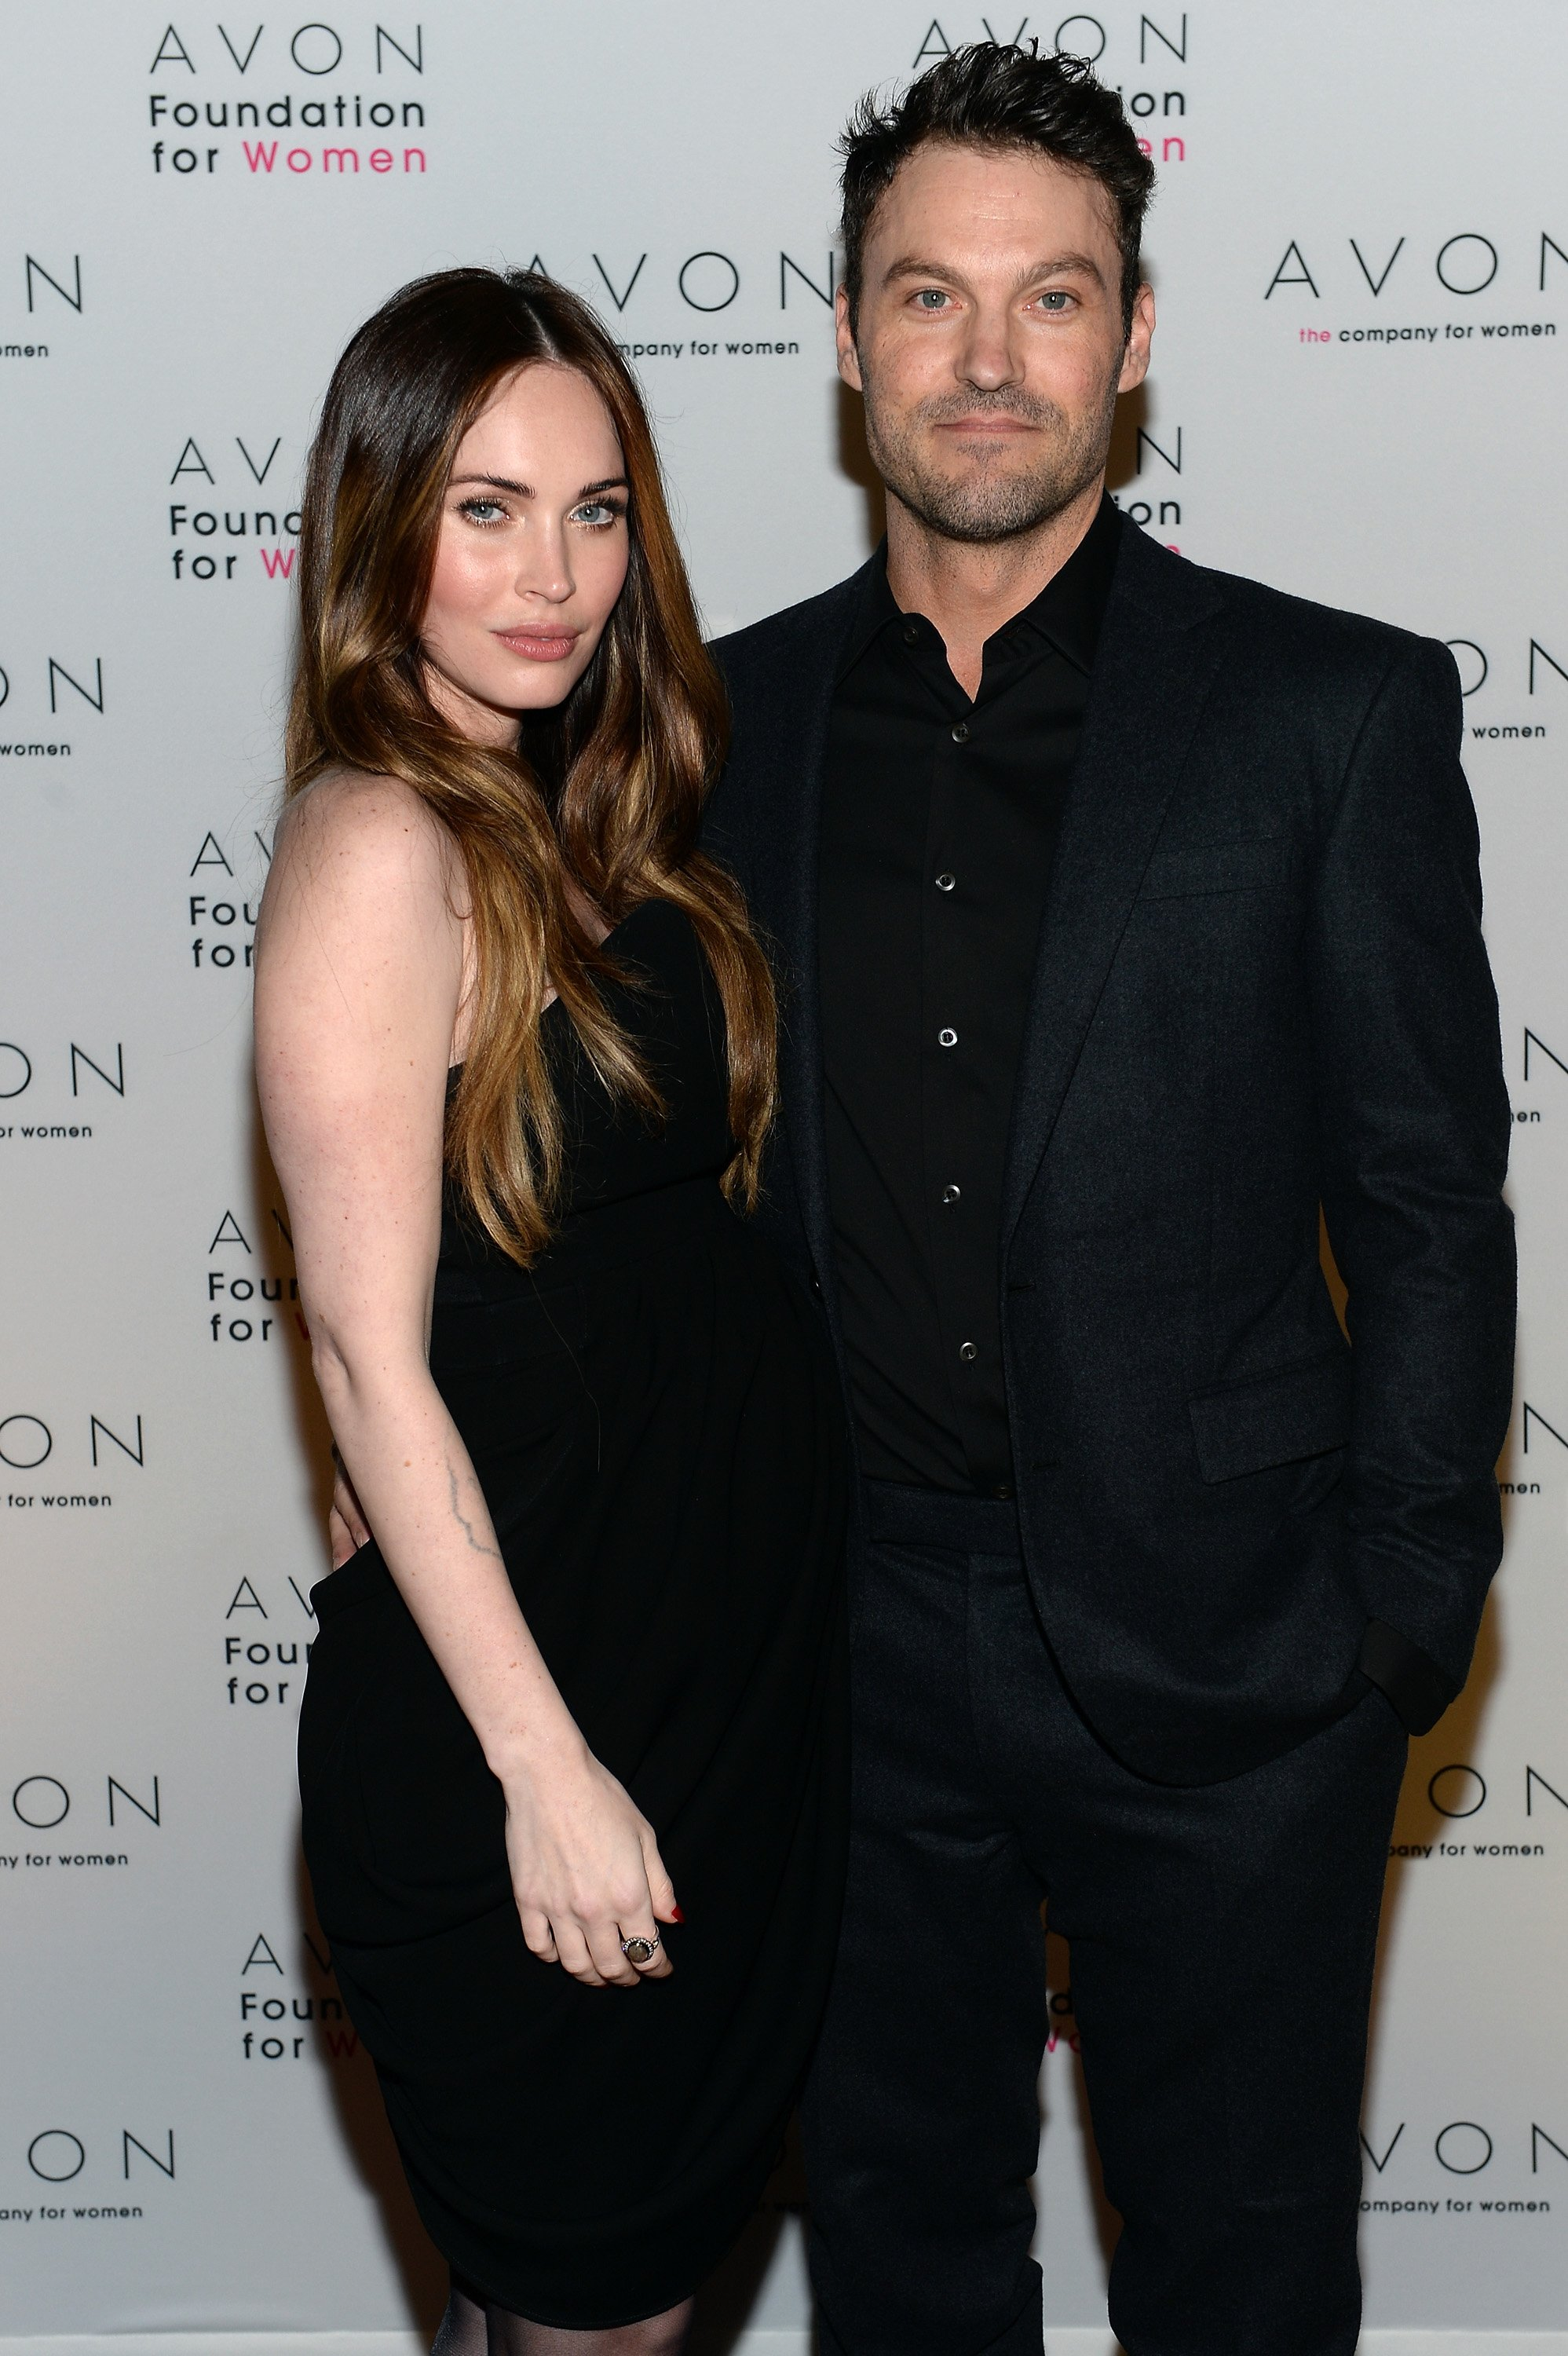 Megan Fox and Brian Austin Green during a 2013 launching event in New York City.